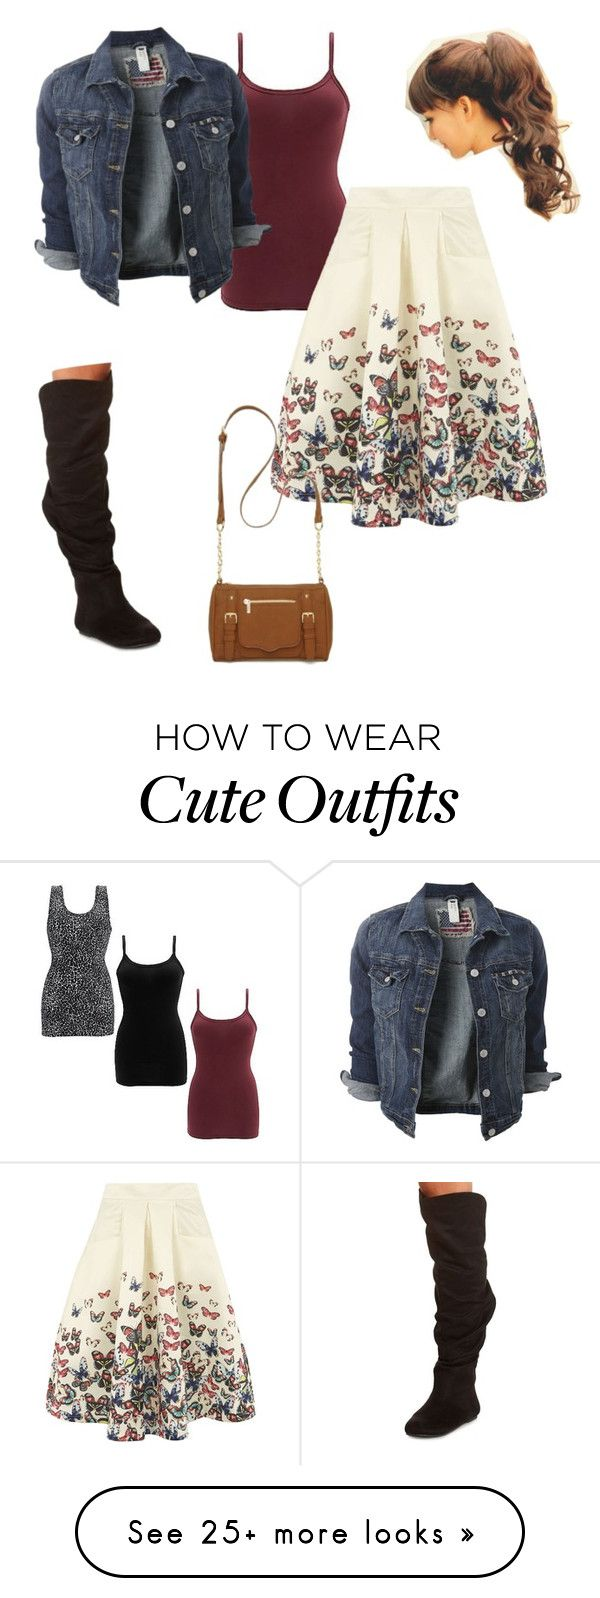 56 best Polyvore Fashion images on Pinterest   Fashion collage ...